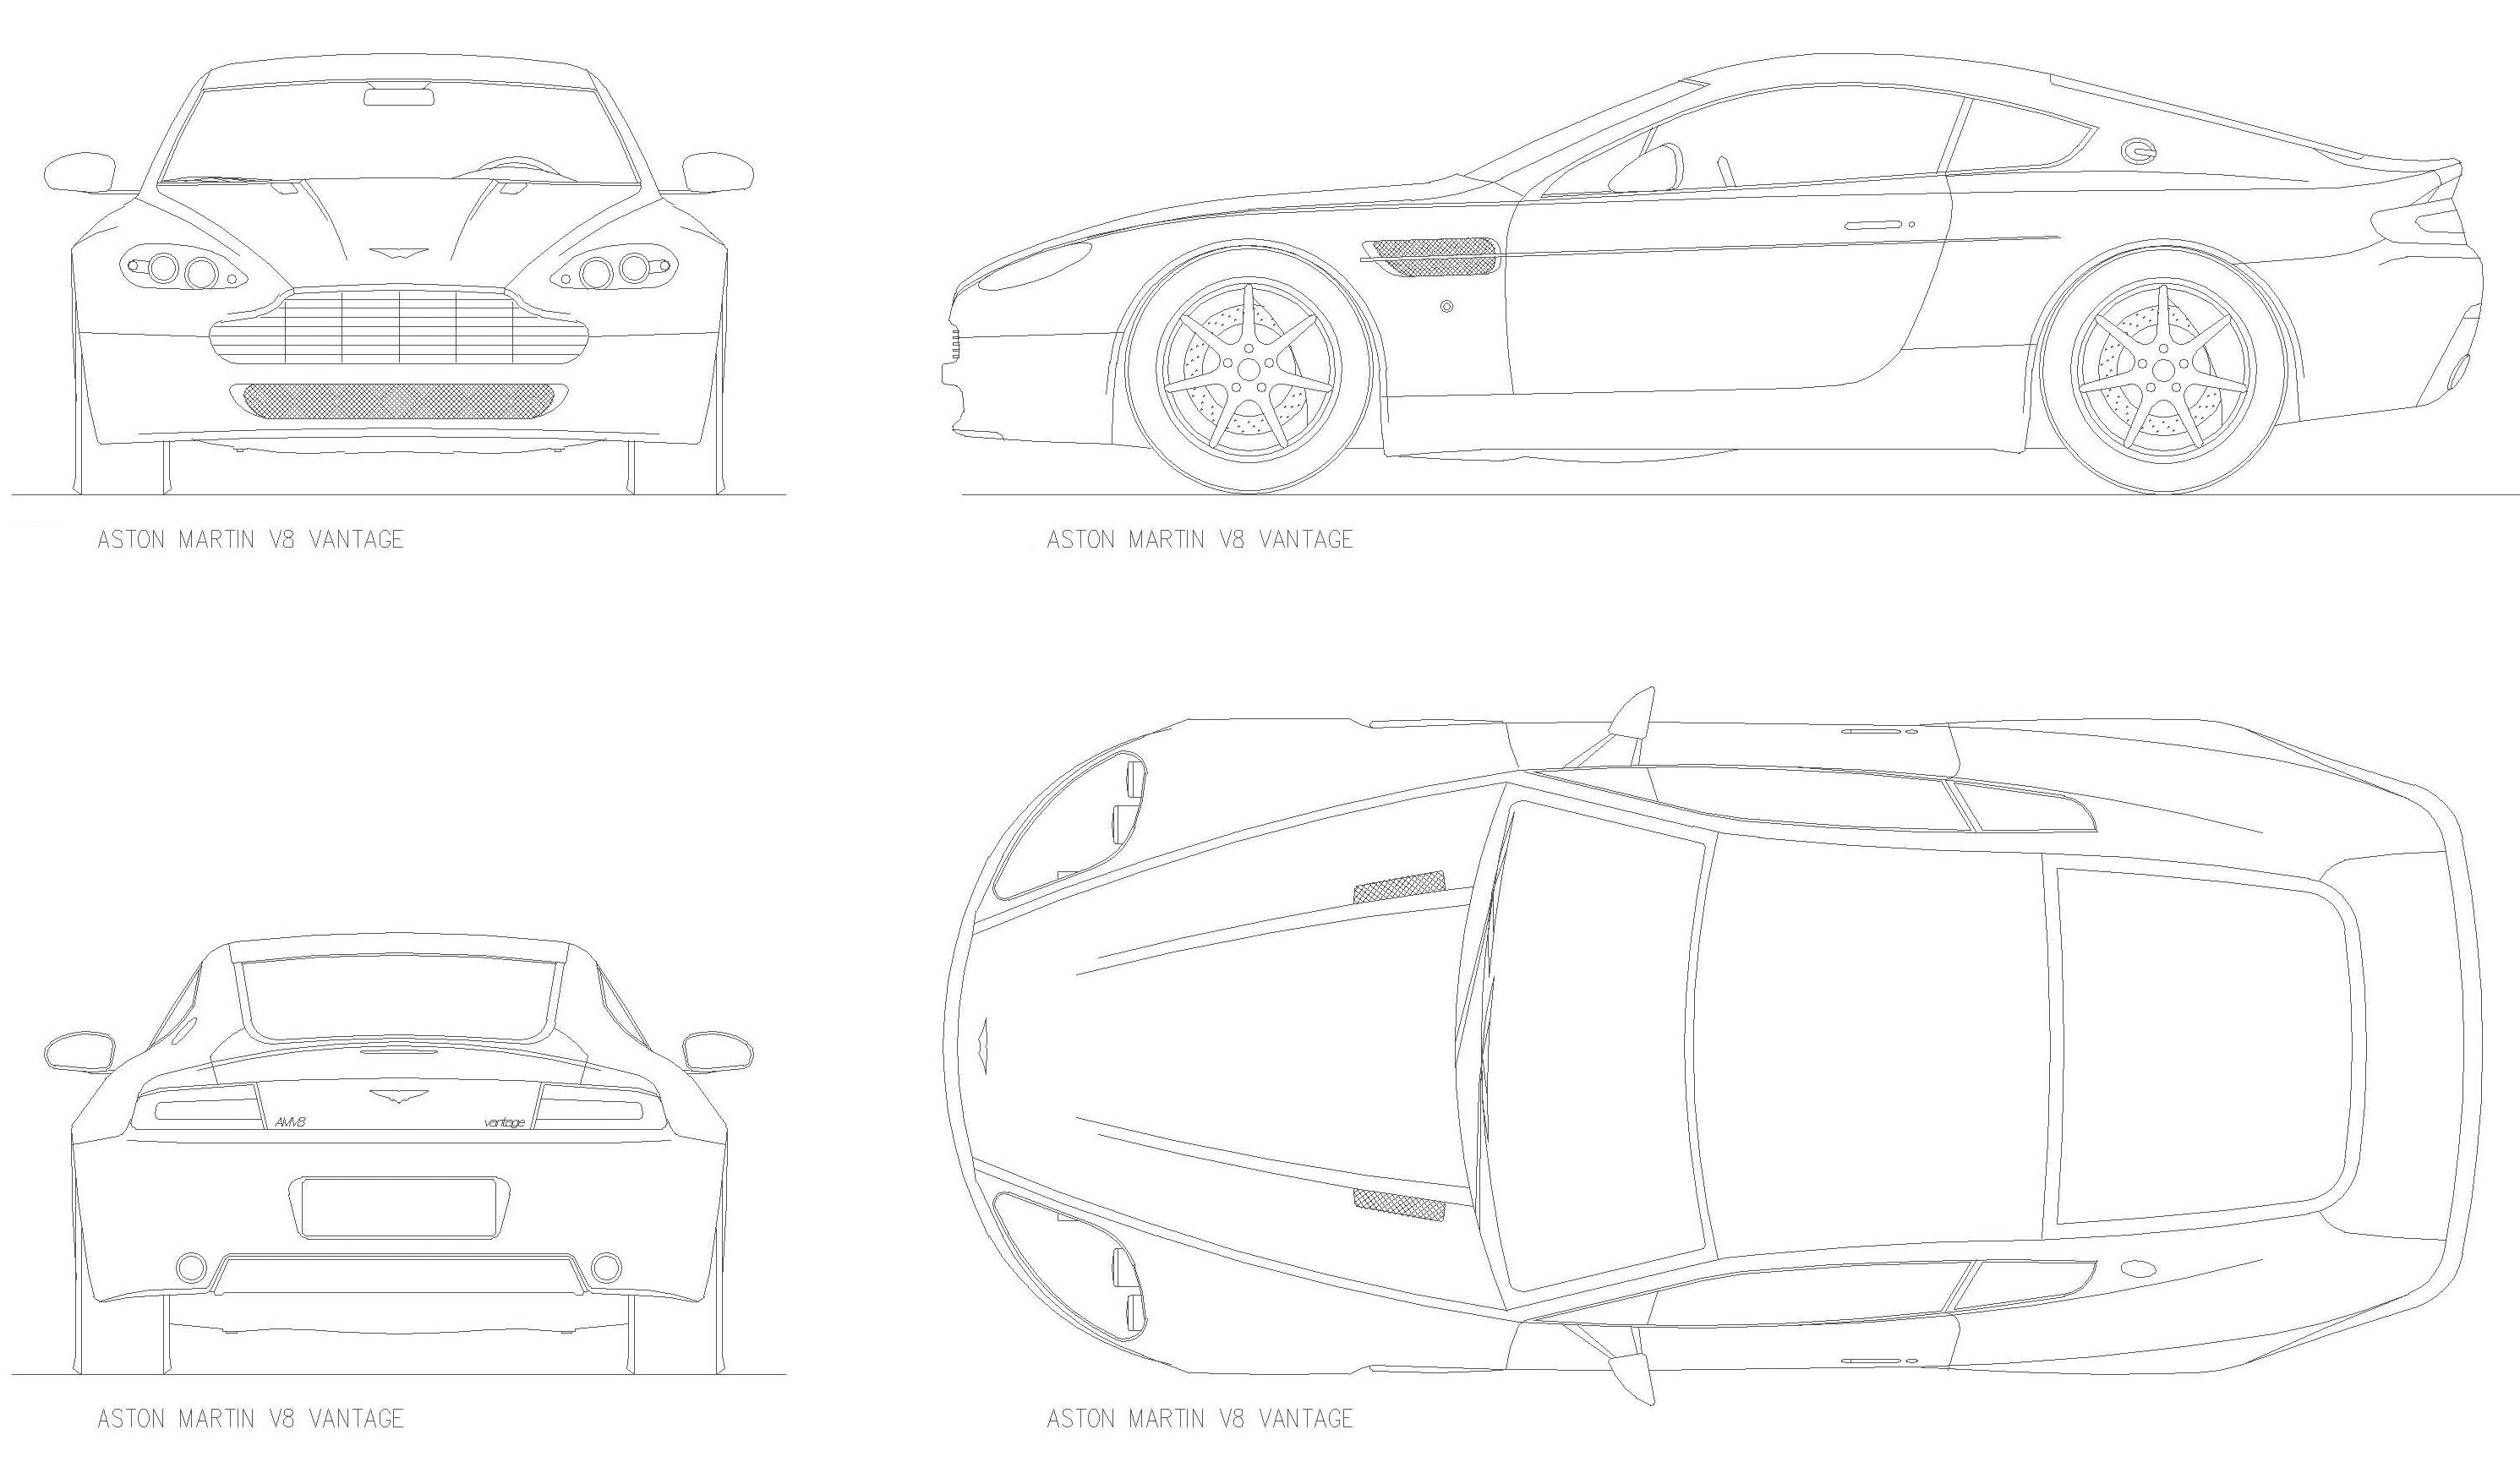 2006 Aston Martin V8 Vantage Coupe Blueprints Free Outlines